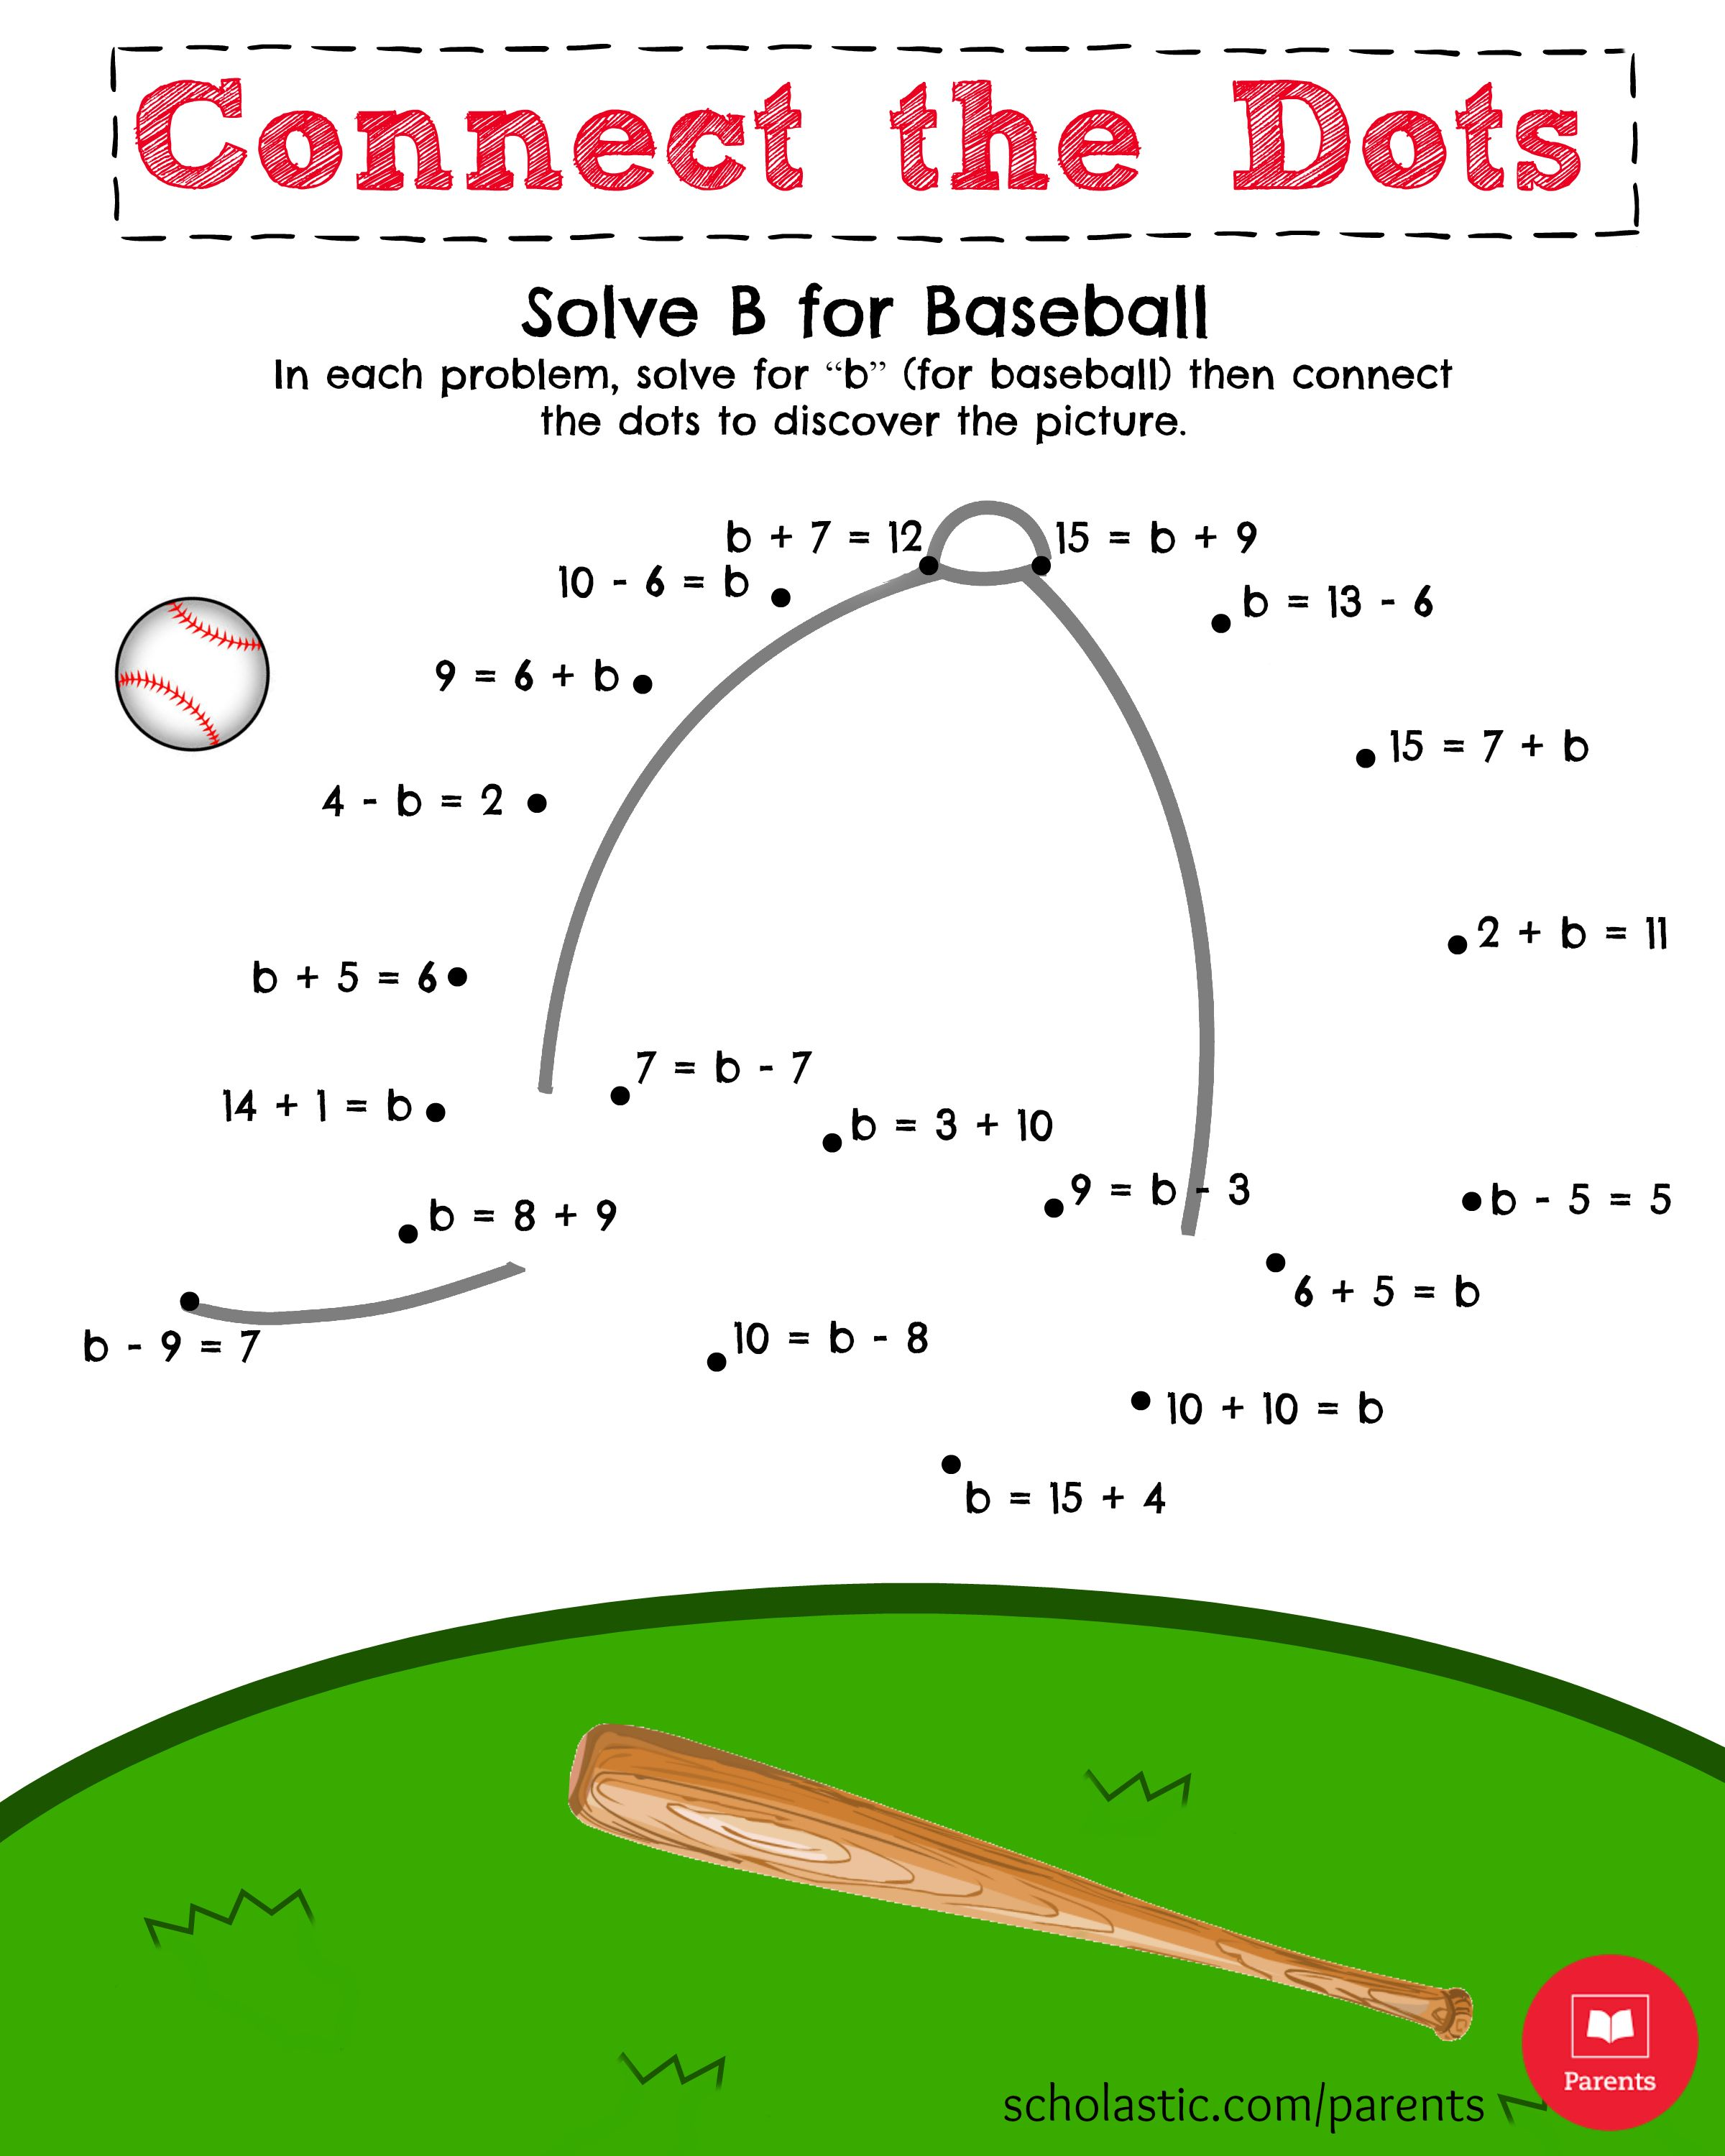 Help Your Child Solve For B And Then Connect The Dots In